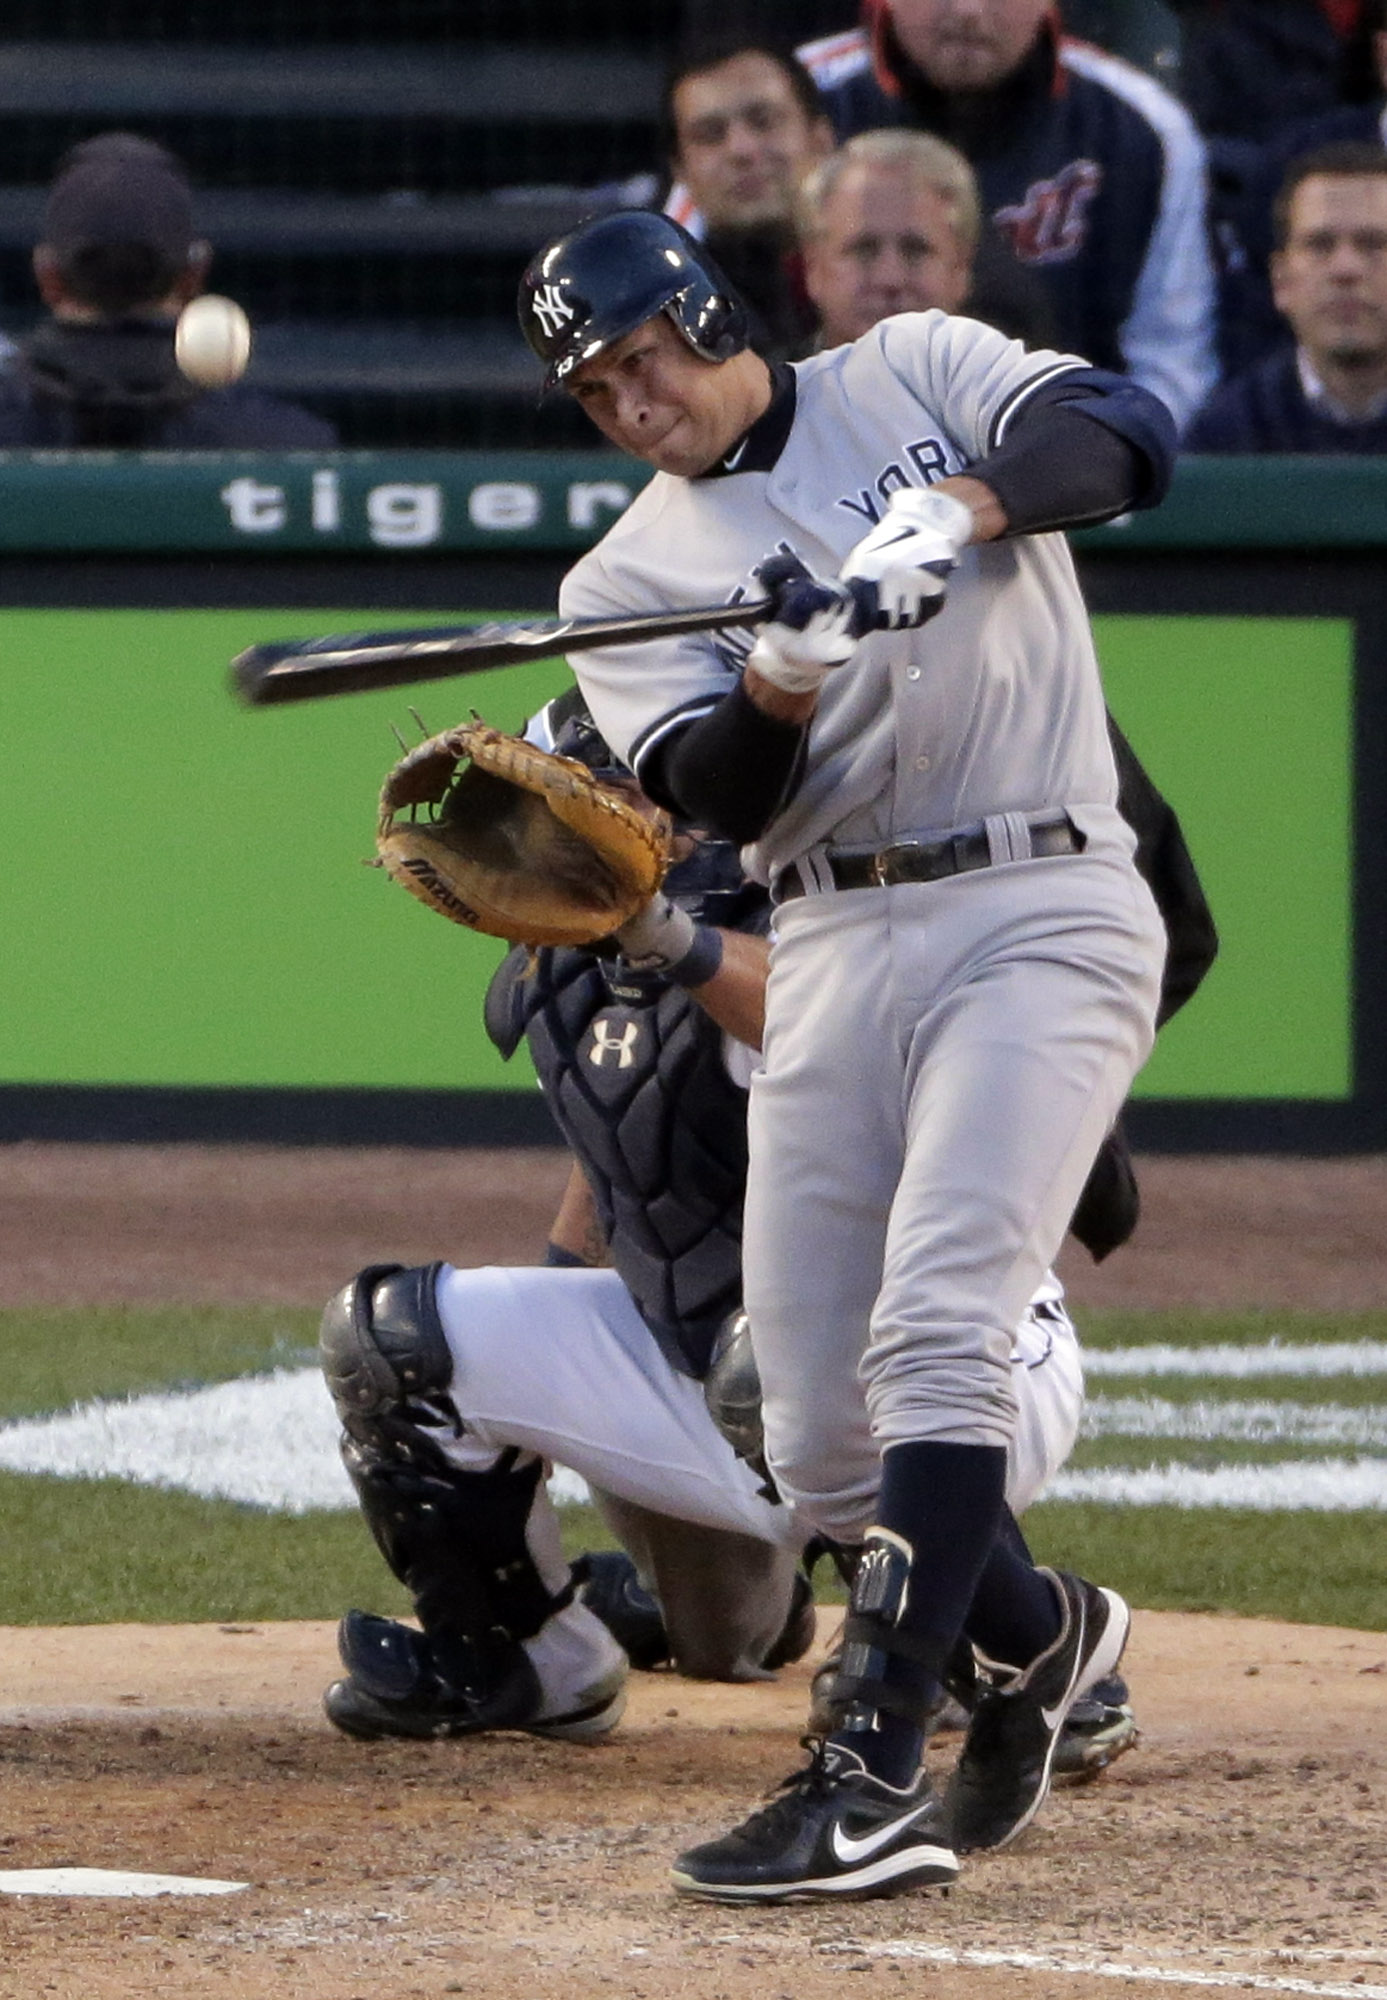 The Yankees' Alex Rodriguez has a tear in his left hip. (AP)